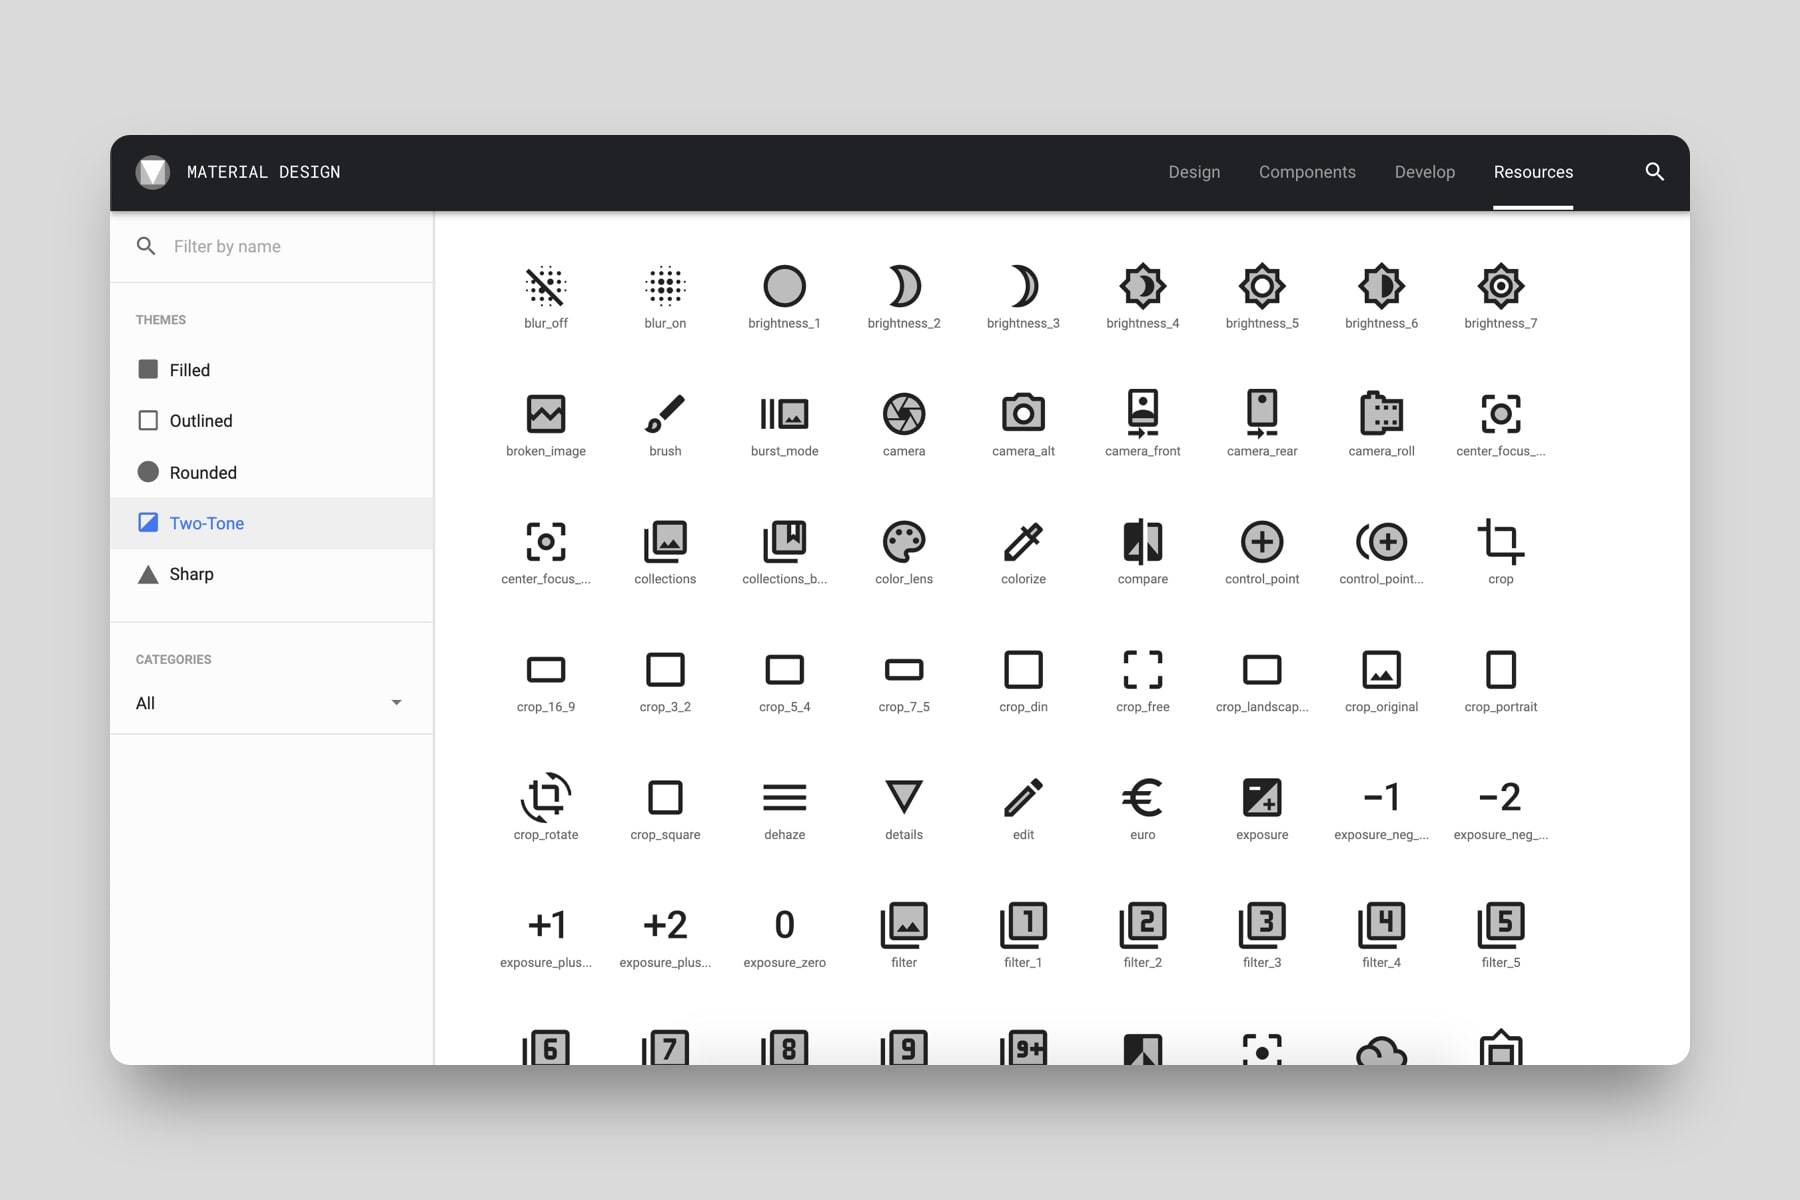 Free icons by Google